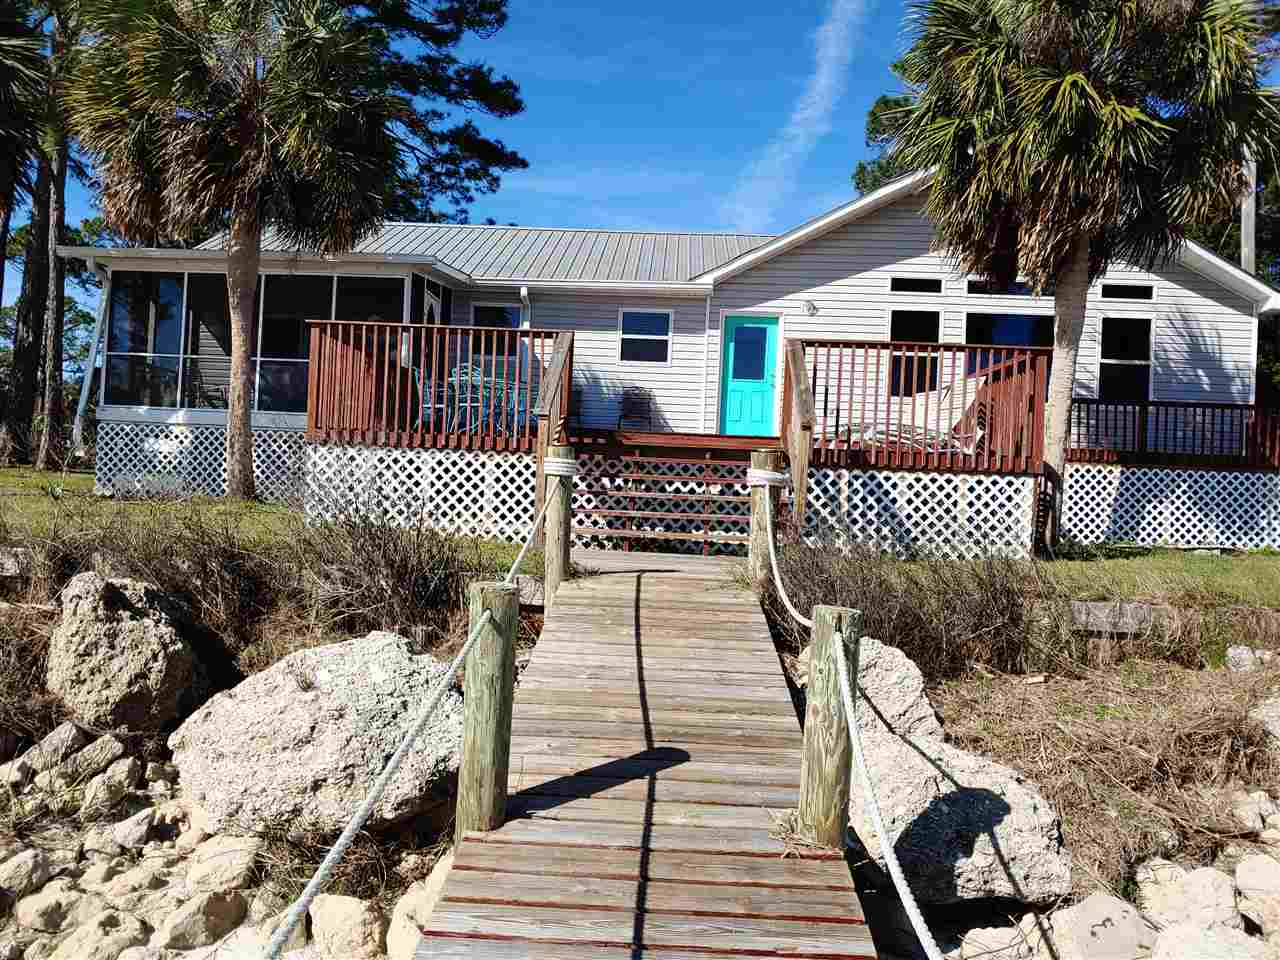 Below Appraisal - This sweet bay front cottage is located on Hwy 98 E in the quaint fishing community of Lanark and has a newly repaired dock and boat lift, great views of Bird Island, Lanark Reef and Dog Island.  The open concept and huge kitchen make it perfect for large gatherings of friends and family and boasts an over-sized kitchen island (3'x8'). There are reclaimed barnwood floors throughout the main living area, kitchen, hallway and master bedroom. The slightly white-washed knotty pine tongue and groove walls and ceiling give this cottage a comfy rustic beachy feel.  There is a large pantry and laundry room. The large deck and screened porch overlook the white sandy beach, dock and boat lift.  The large master bathroom has a shower stall, new floor, tile and toilet. The guest bath has a shower/tub, new floor, tile and toilet.  There are high vanities in both baths. The sliding door in the master bedroom has recently been replaced with an impact glass window.  The cottage has easy to care for vinyl siding, stand in seam metal roof, a separate cinder block garage with new door and opener and a new metal covered boat storage unit.  The sea wall is in good shape and no repairs were needed after hurricane Michael.  There was only minor damage done to the home which as been repaired.  The dock and boat lift suffered minor damage which have been repaired. The piers under the home were reinforced after the storm.